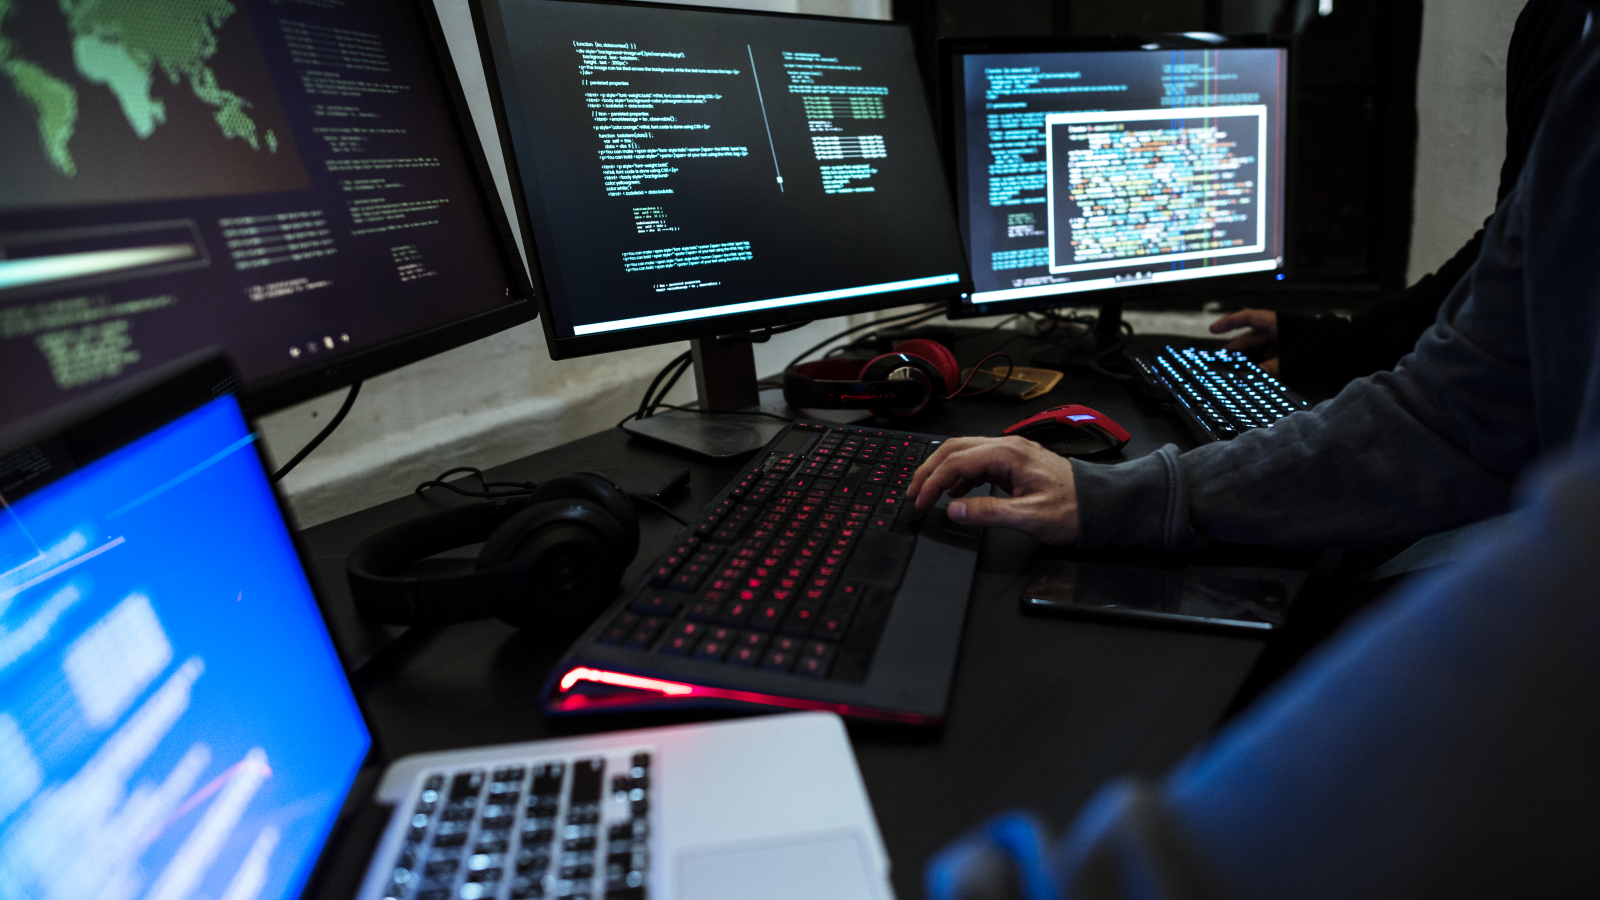 EU and Council of Europe support projects on researching cybercrime and electronic evidence threats in EaP region (Photo: Shutterstock.com)